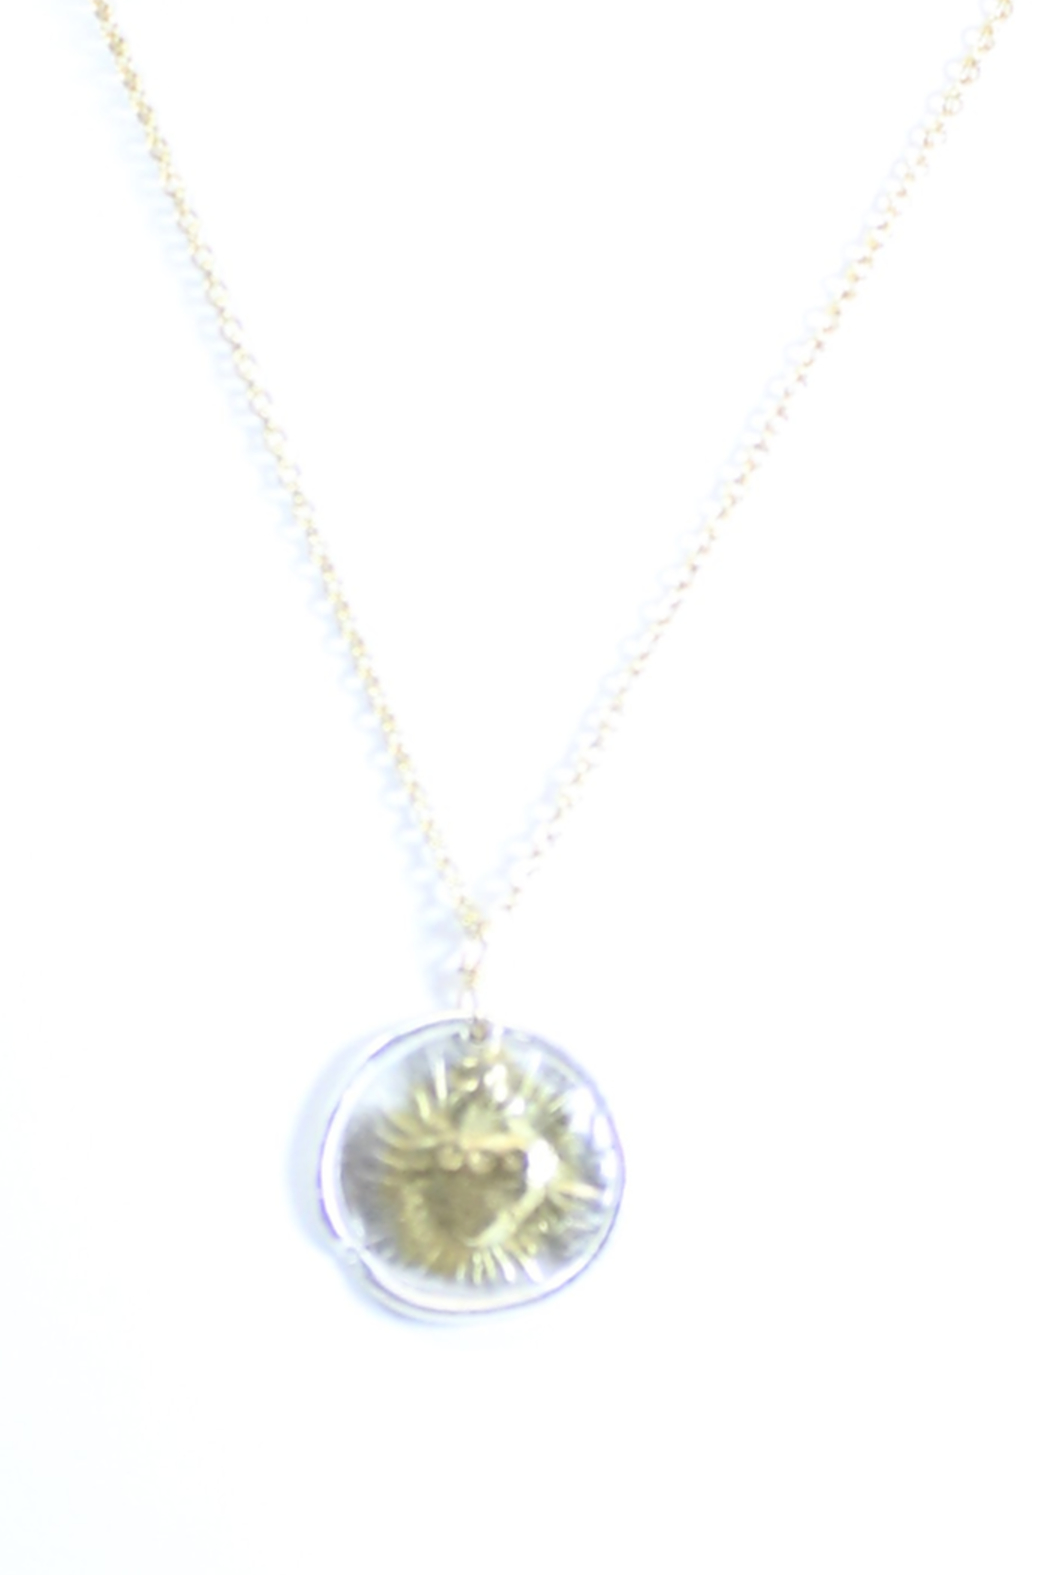 The Birds Nest ROUND SACRED HEART NECKLACE - 9 INCH CHAIN - Main Image